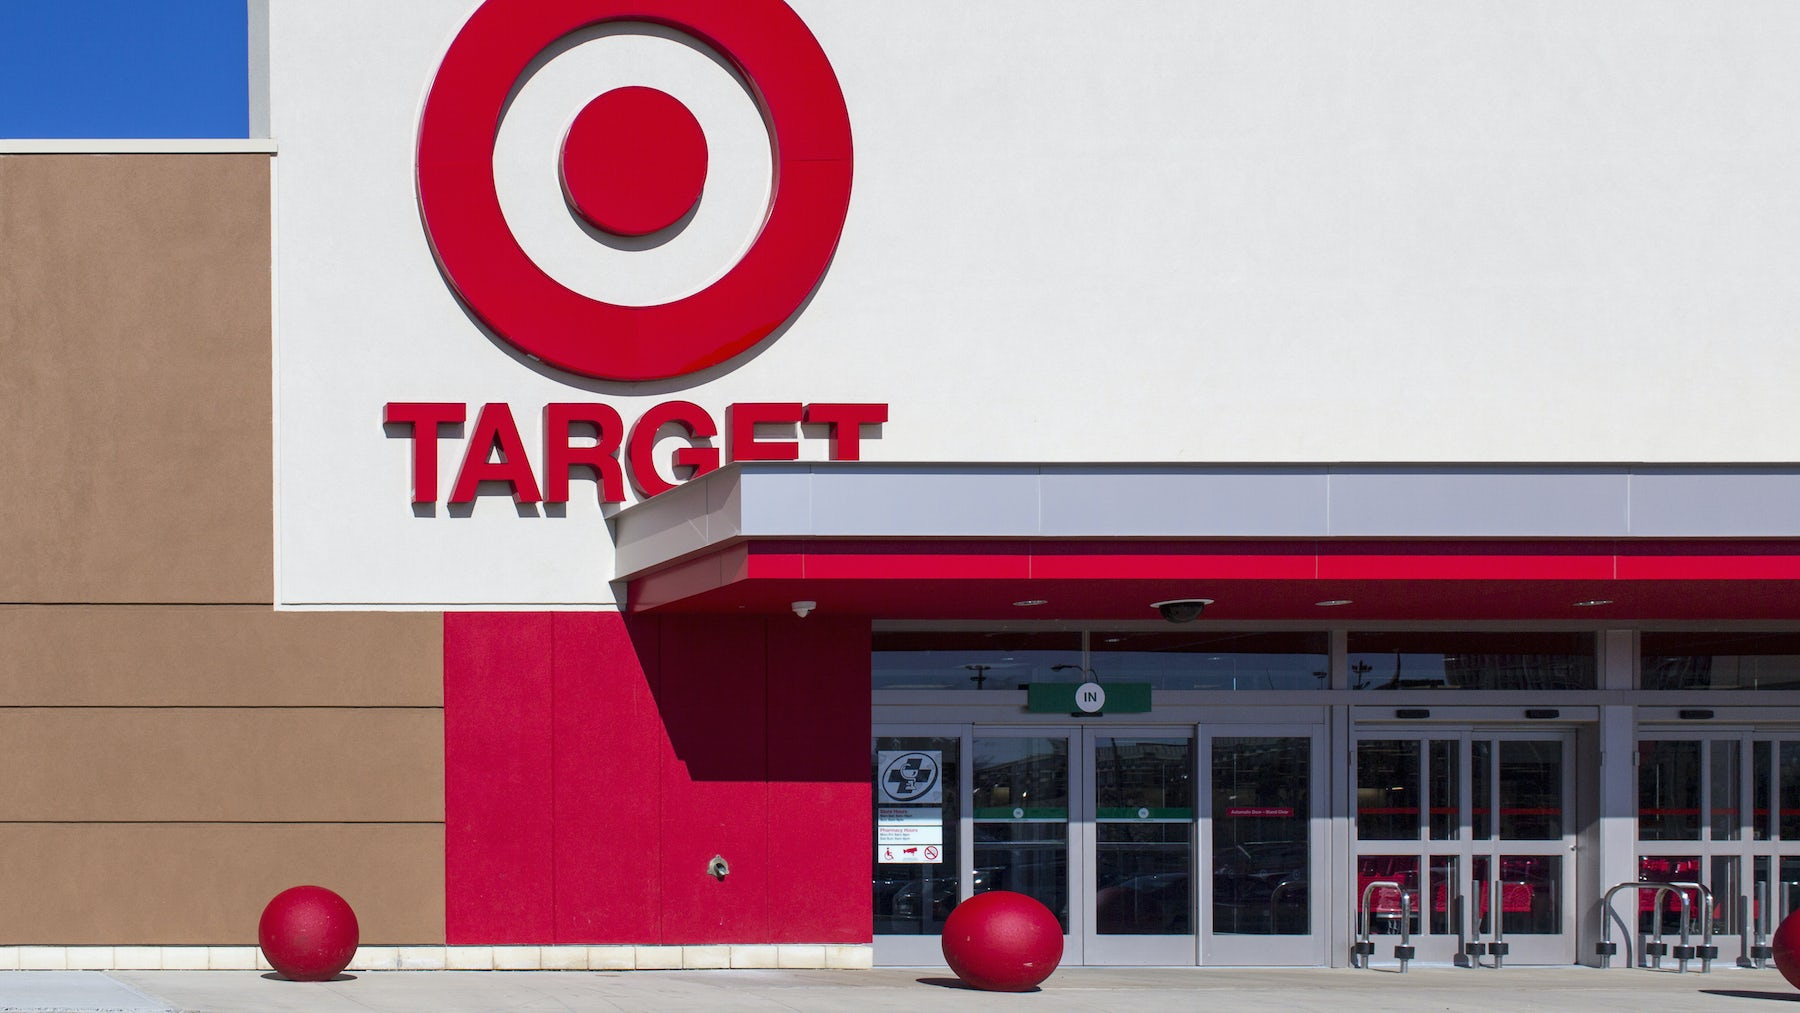 Target to Buy Shipt for $550 Million in Bet on Same-Day Delivery